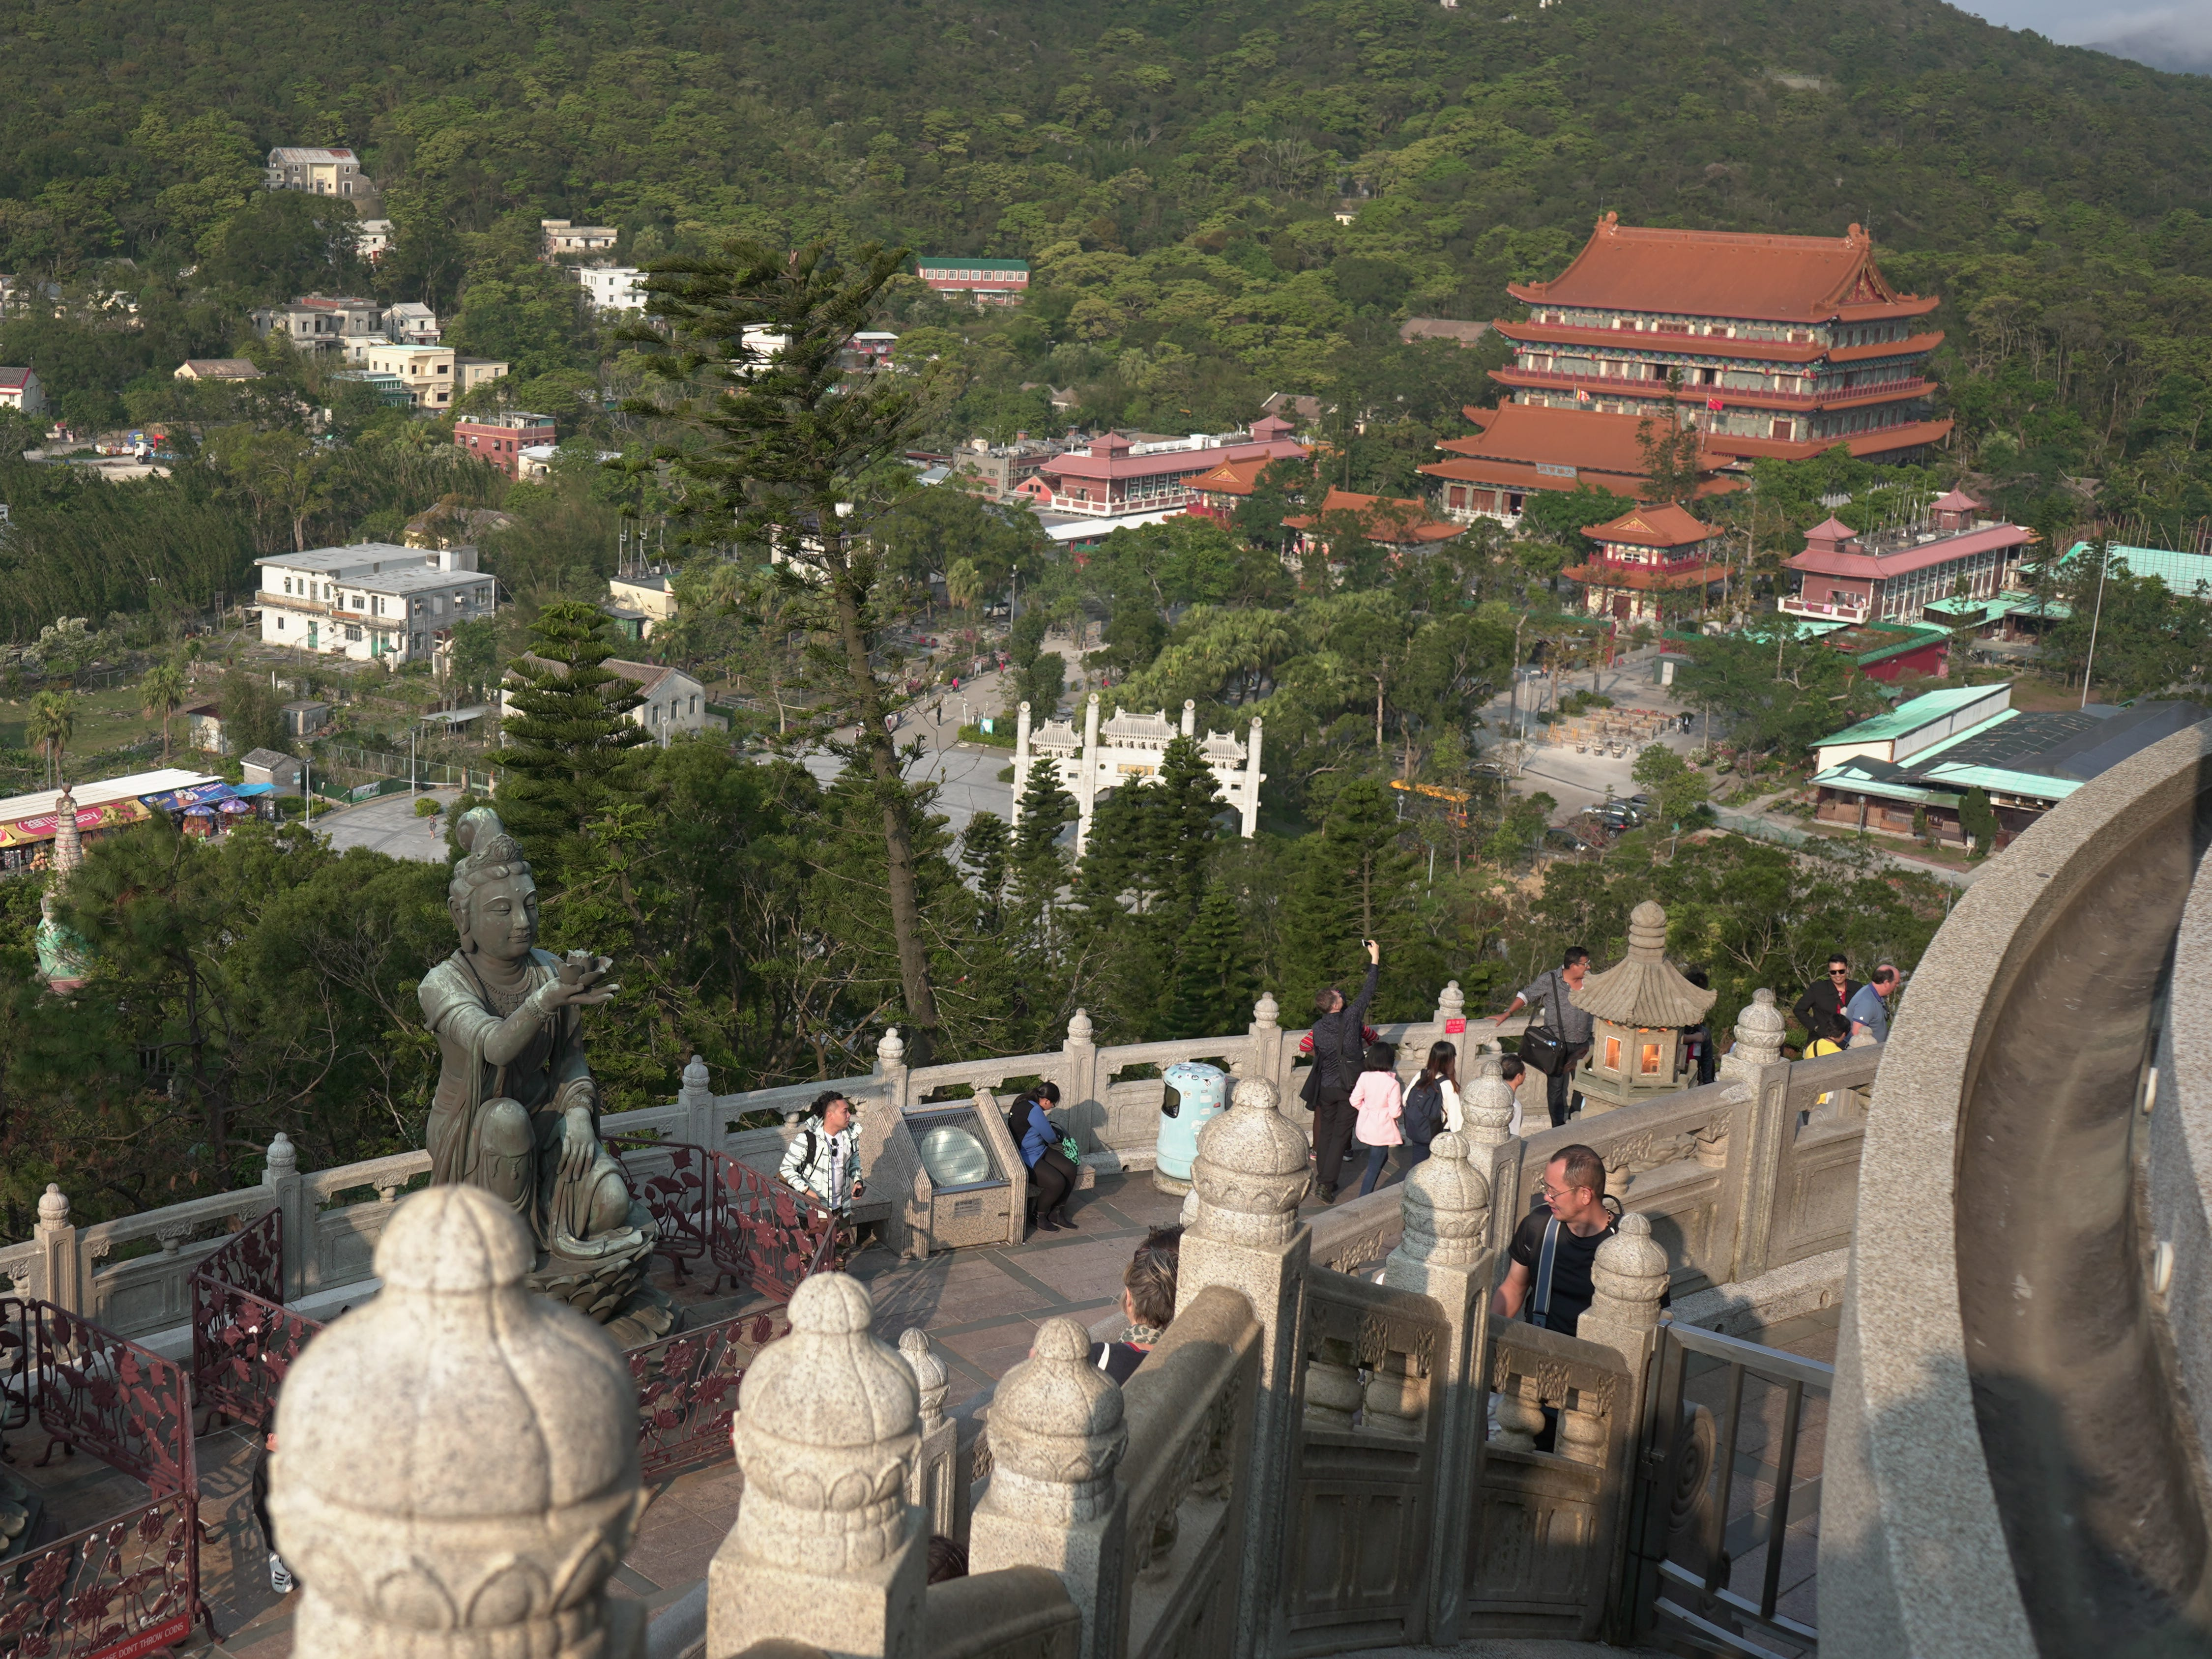 The devas surrounding the Tian Tan Buddha, with the Po Lin Monastery in the distance.